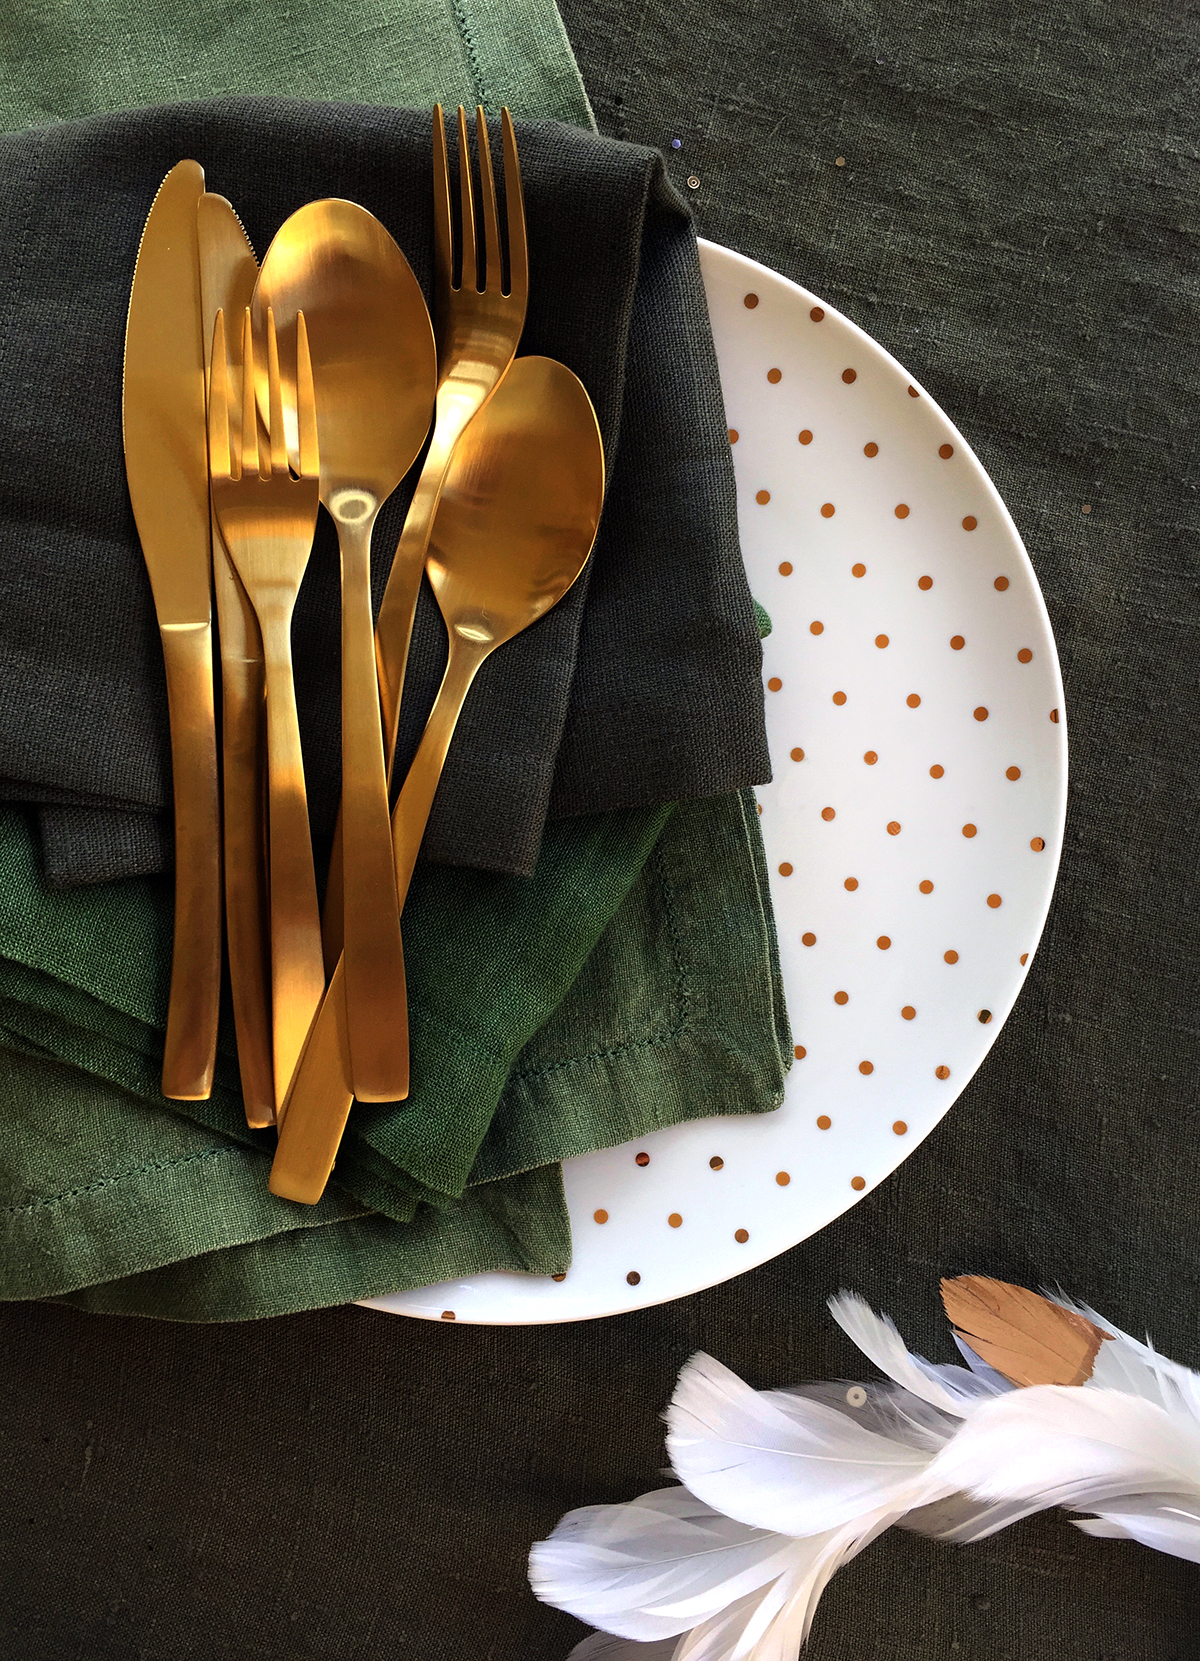 Matte gold cutlery makes a stunning additon to any table setting.